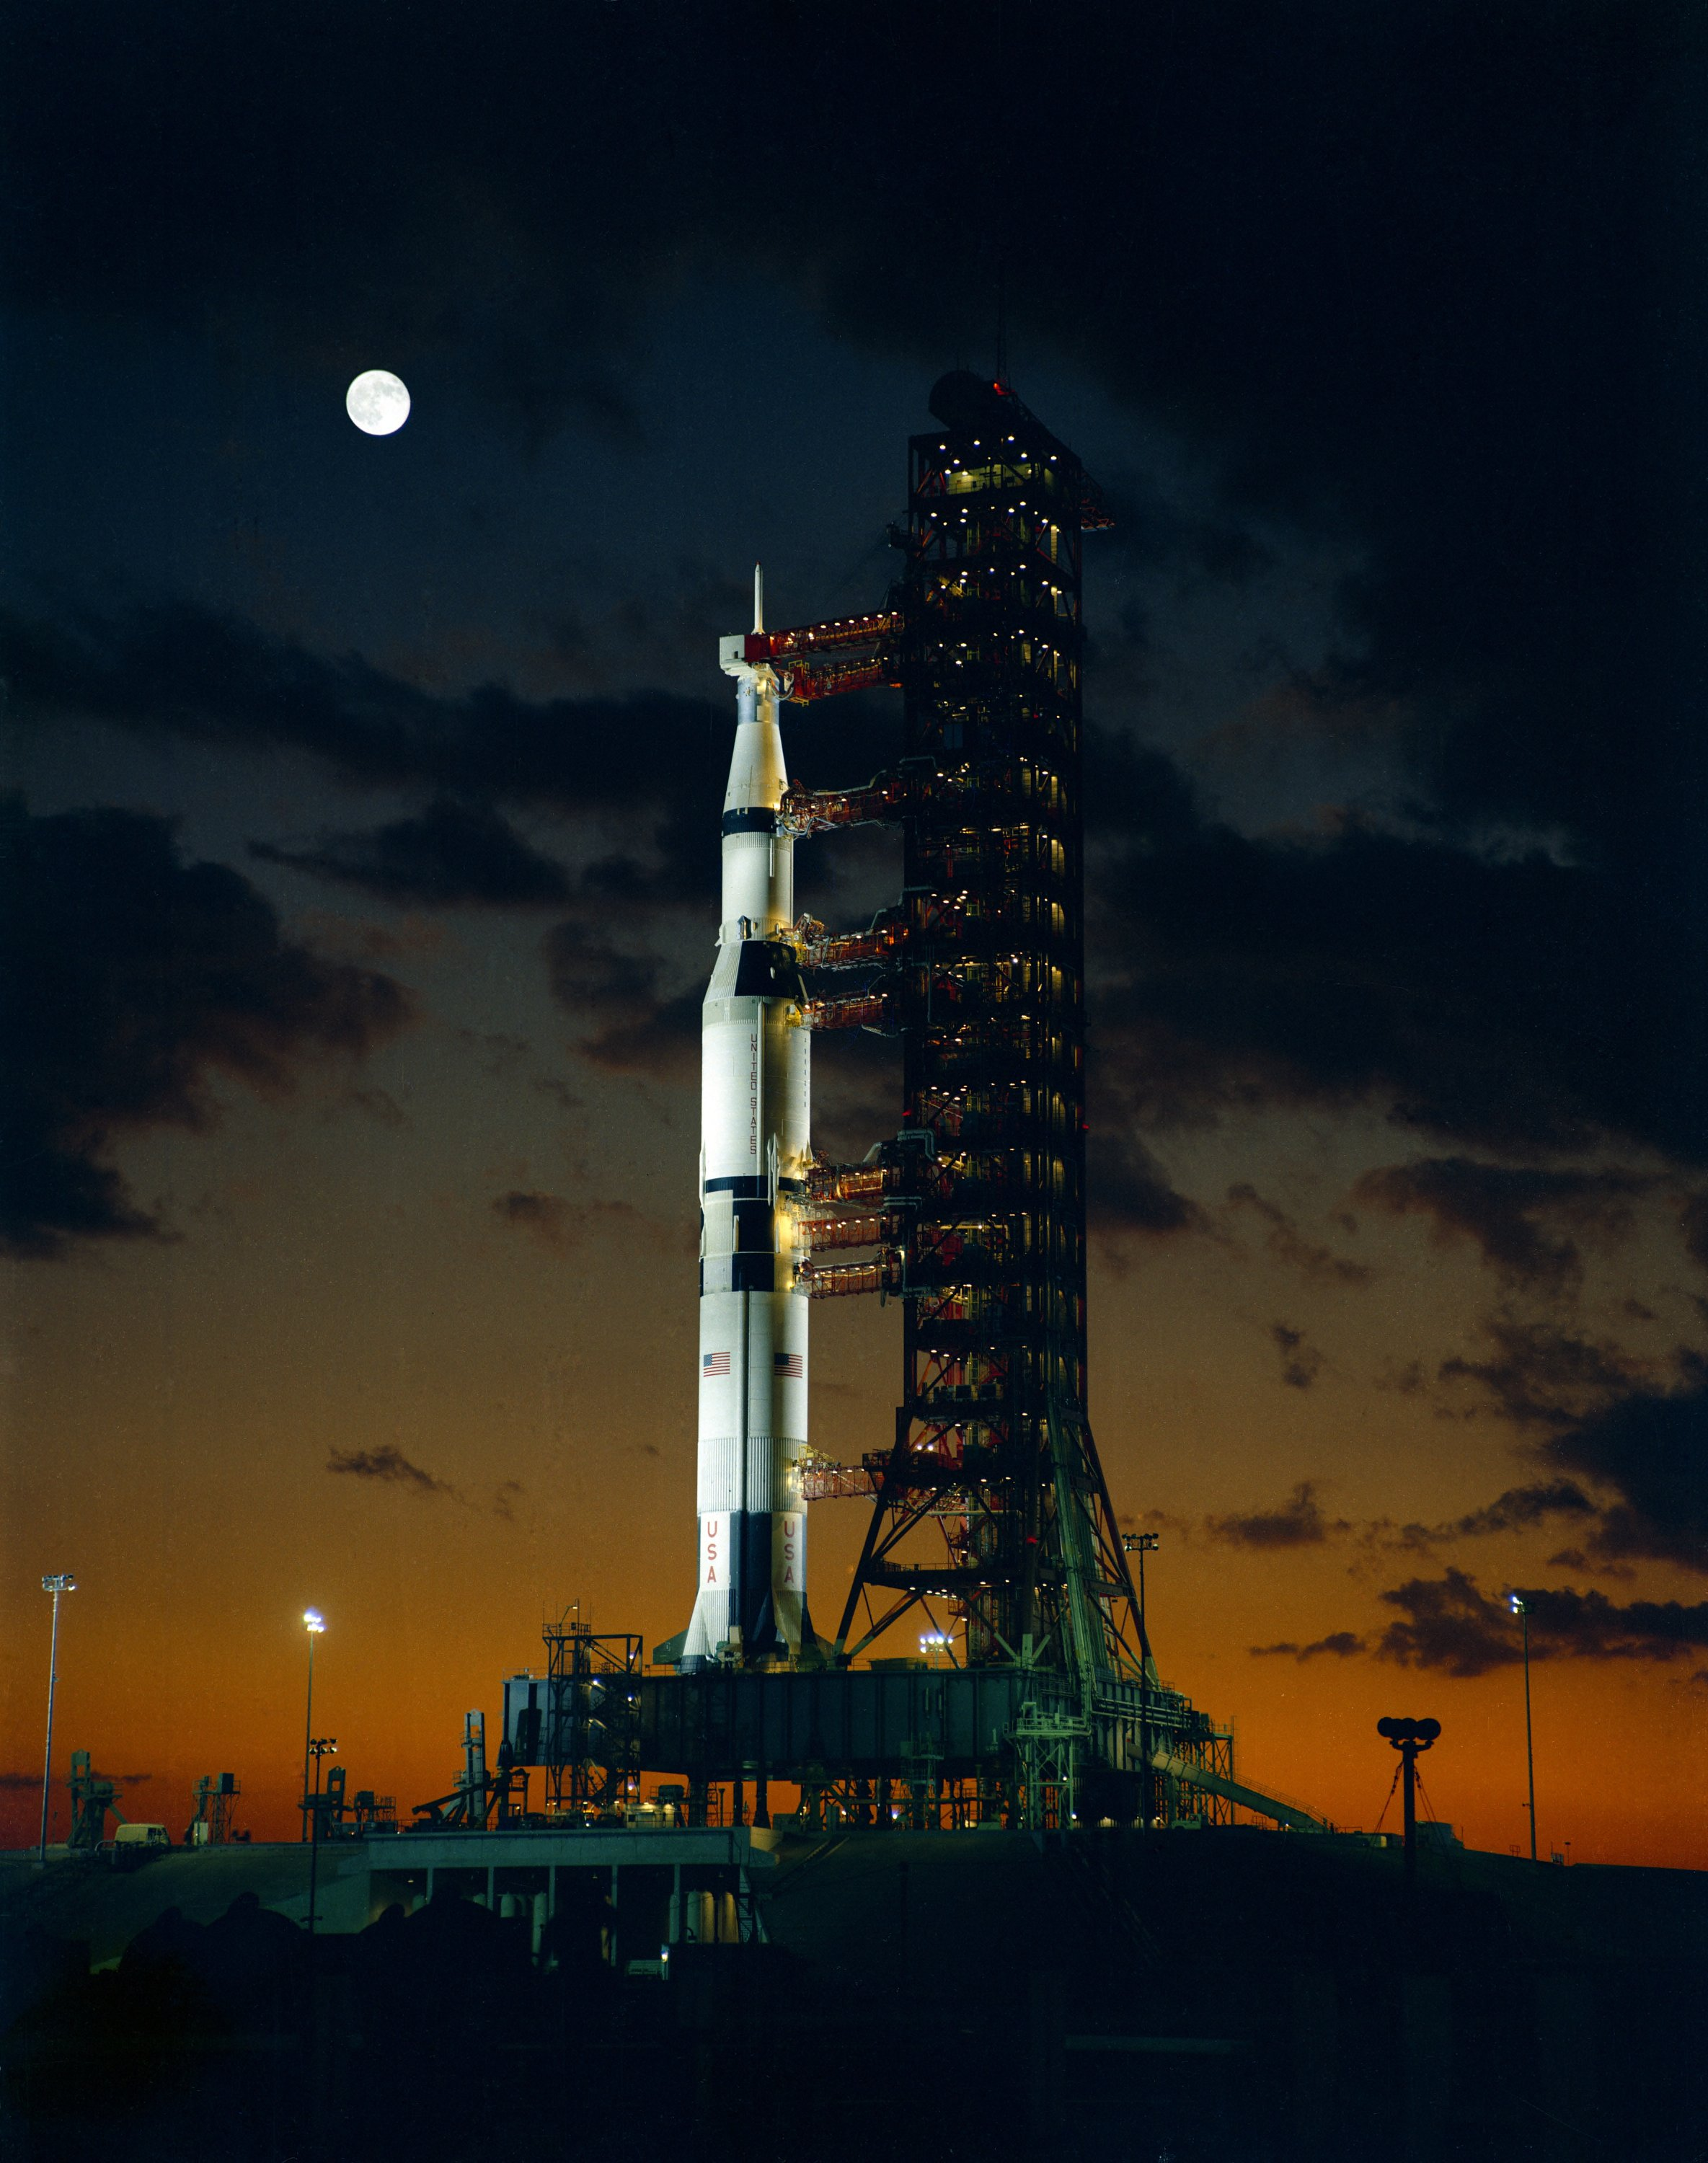 apollo 5 spacecraft - photo #13